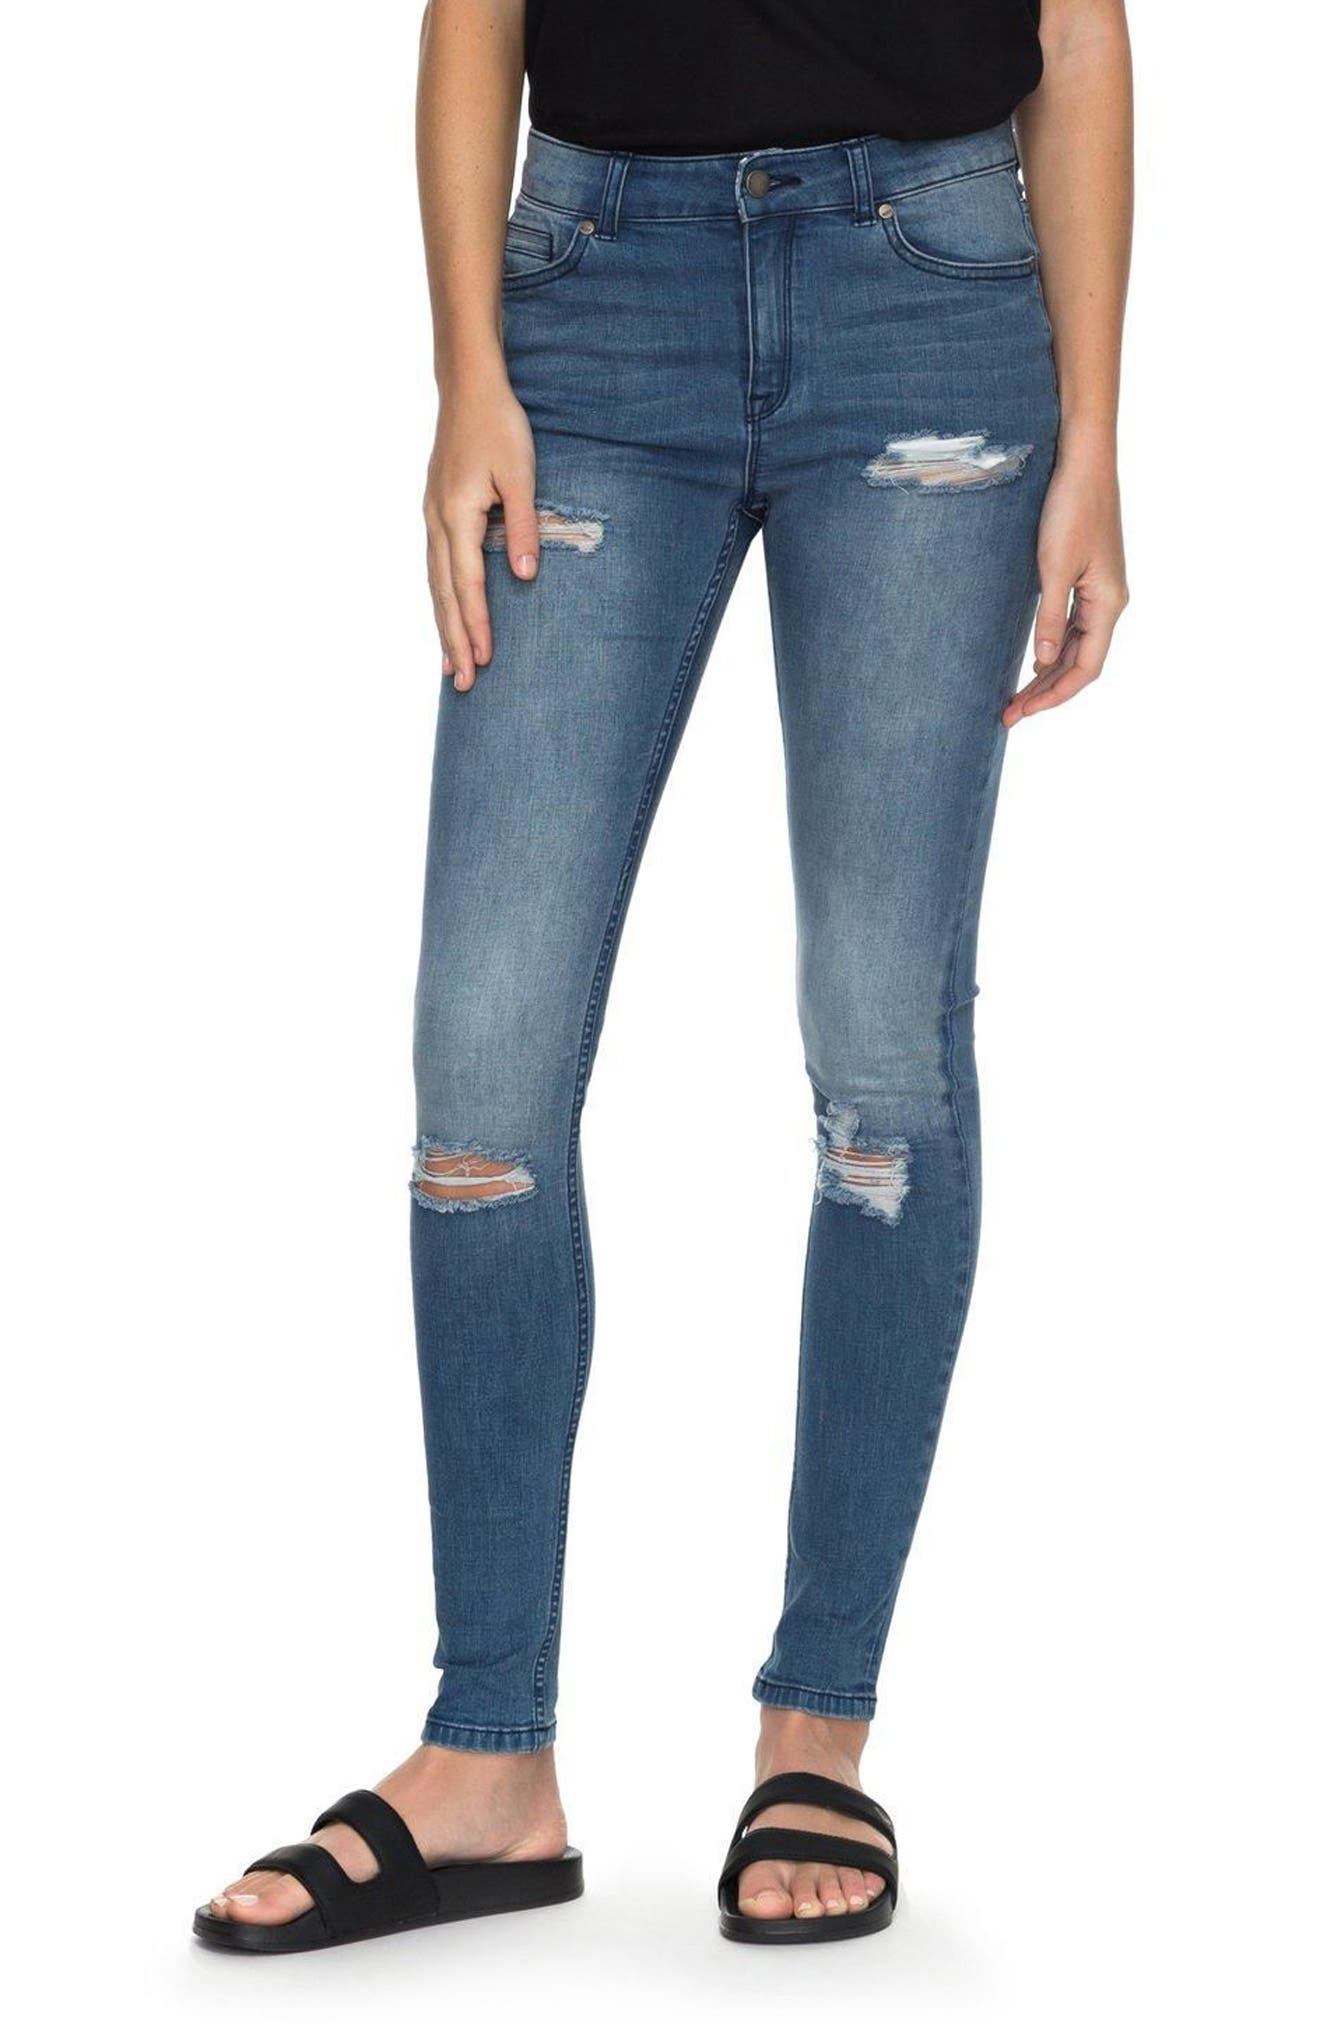 Alternate Image 1 Selected - Roxy Just the Good Day Distressed Skinny Jeans